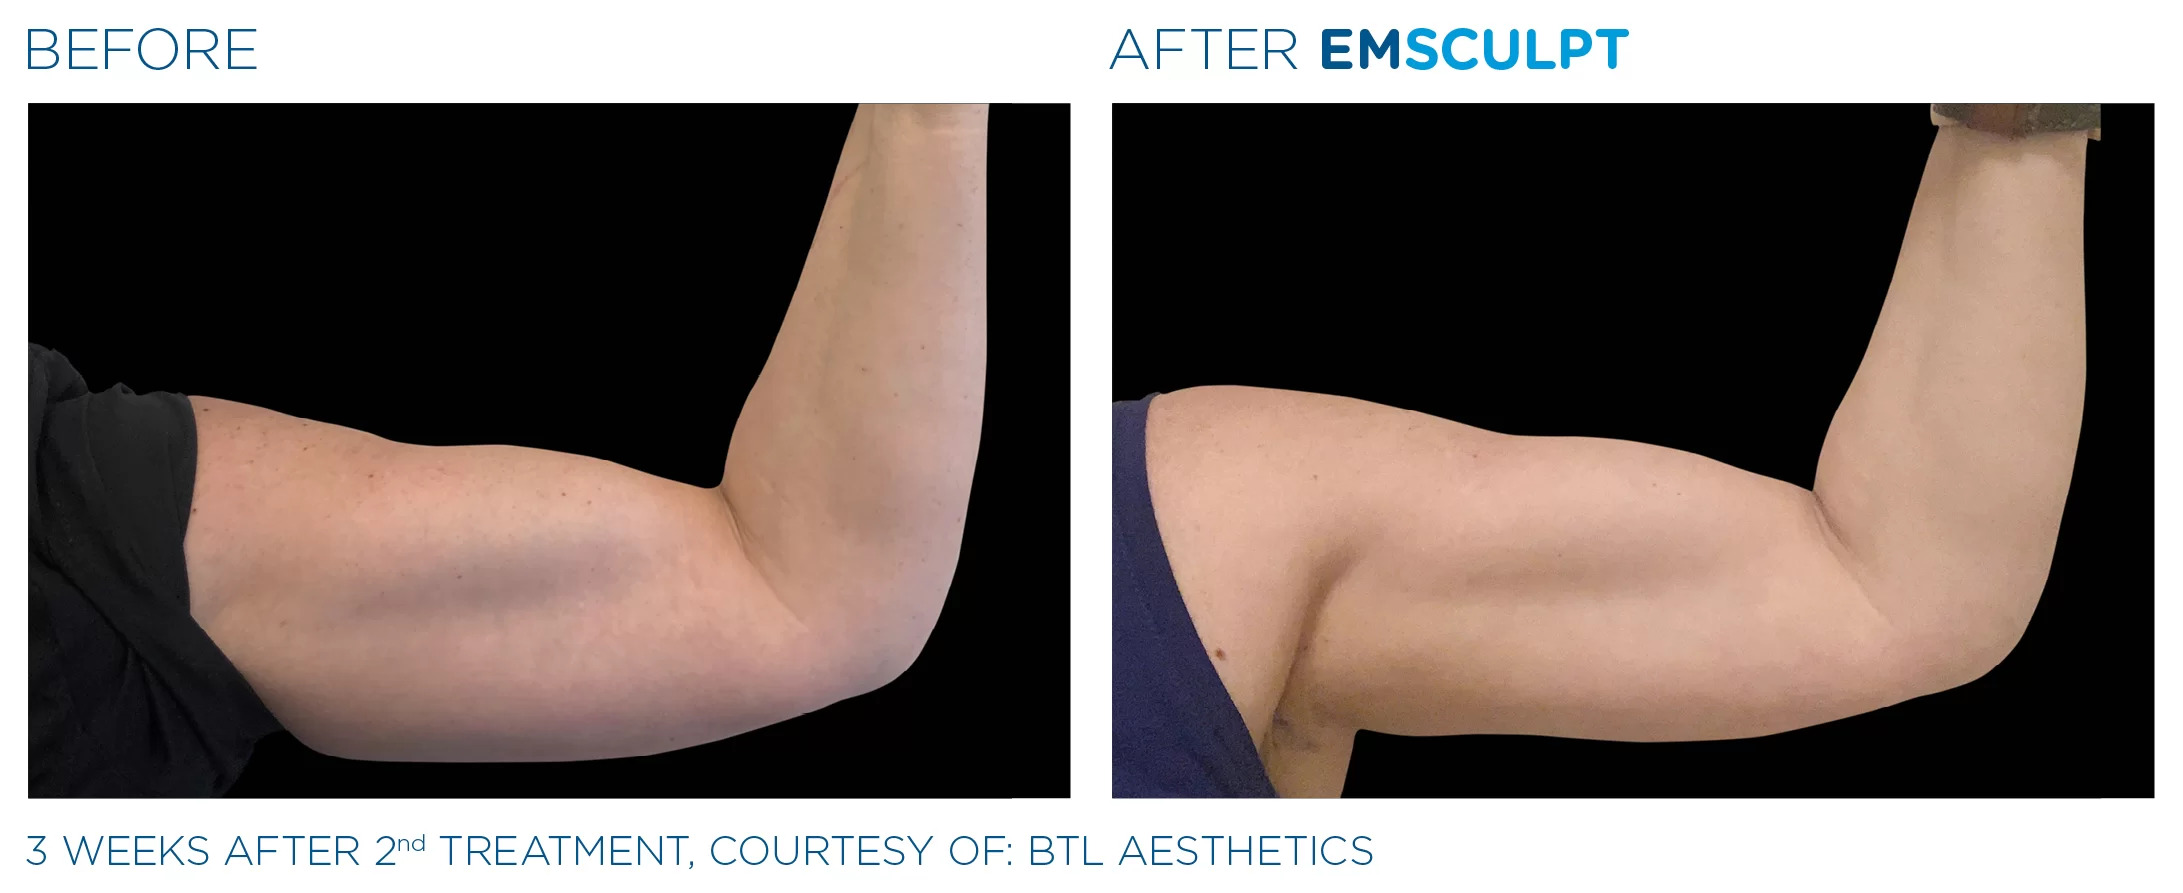 EmSculpt before and after photo #2